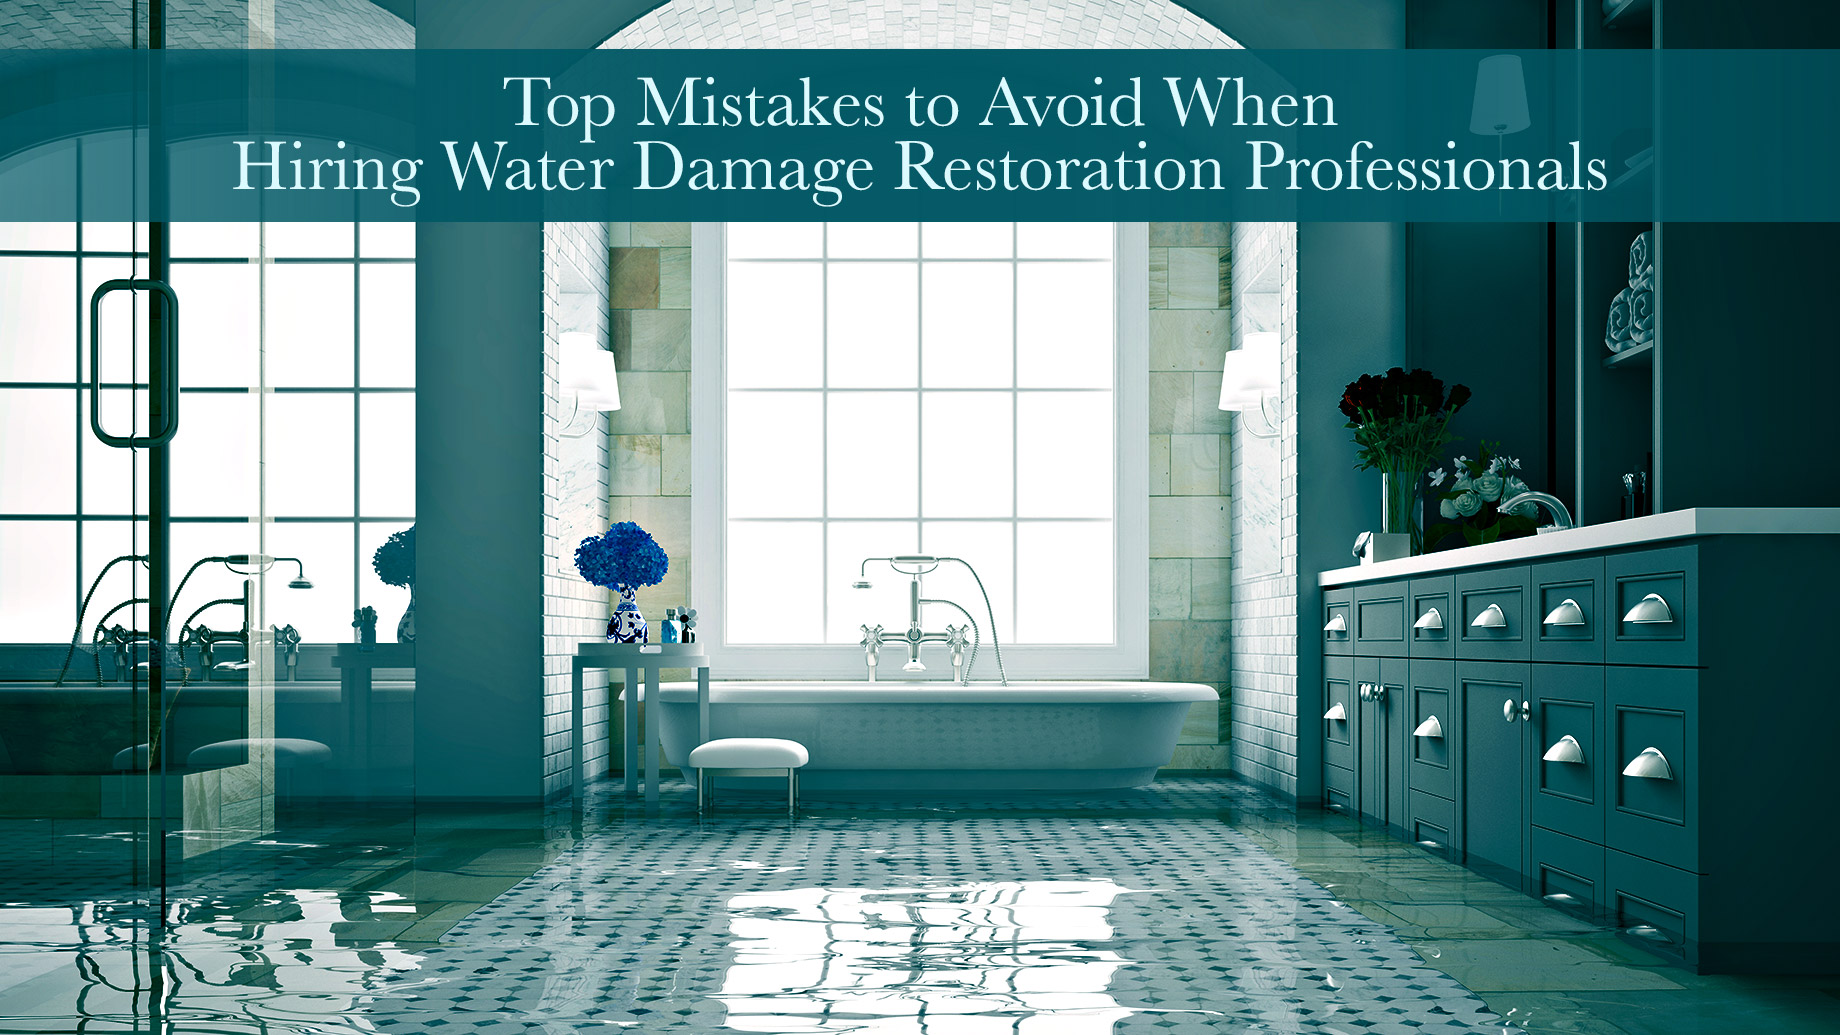 Top Mistakes to Avoid When Hiring Water Damage Restoration Professionals